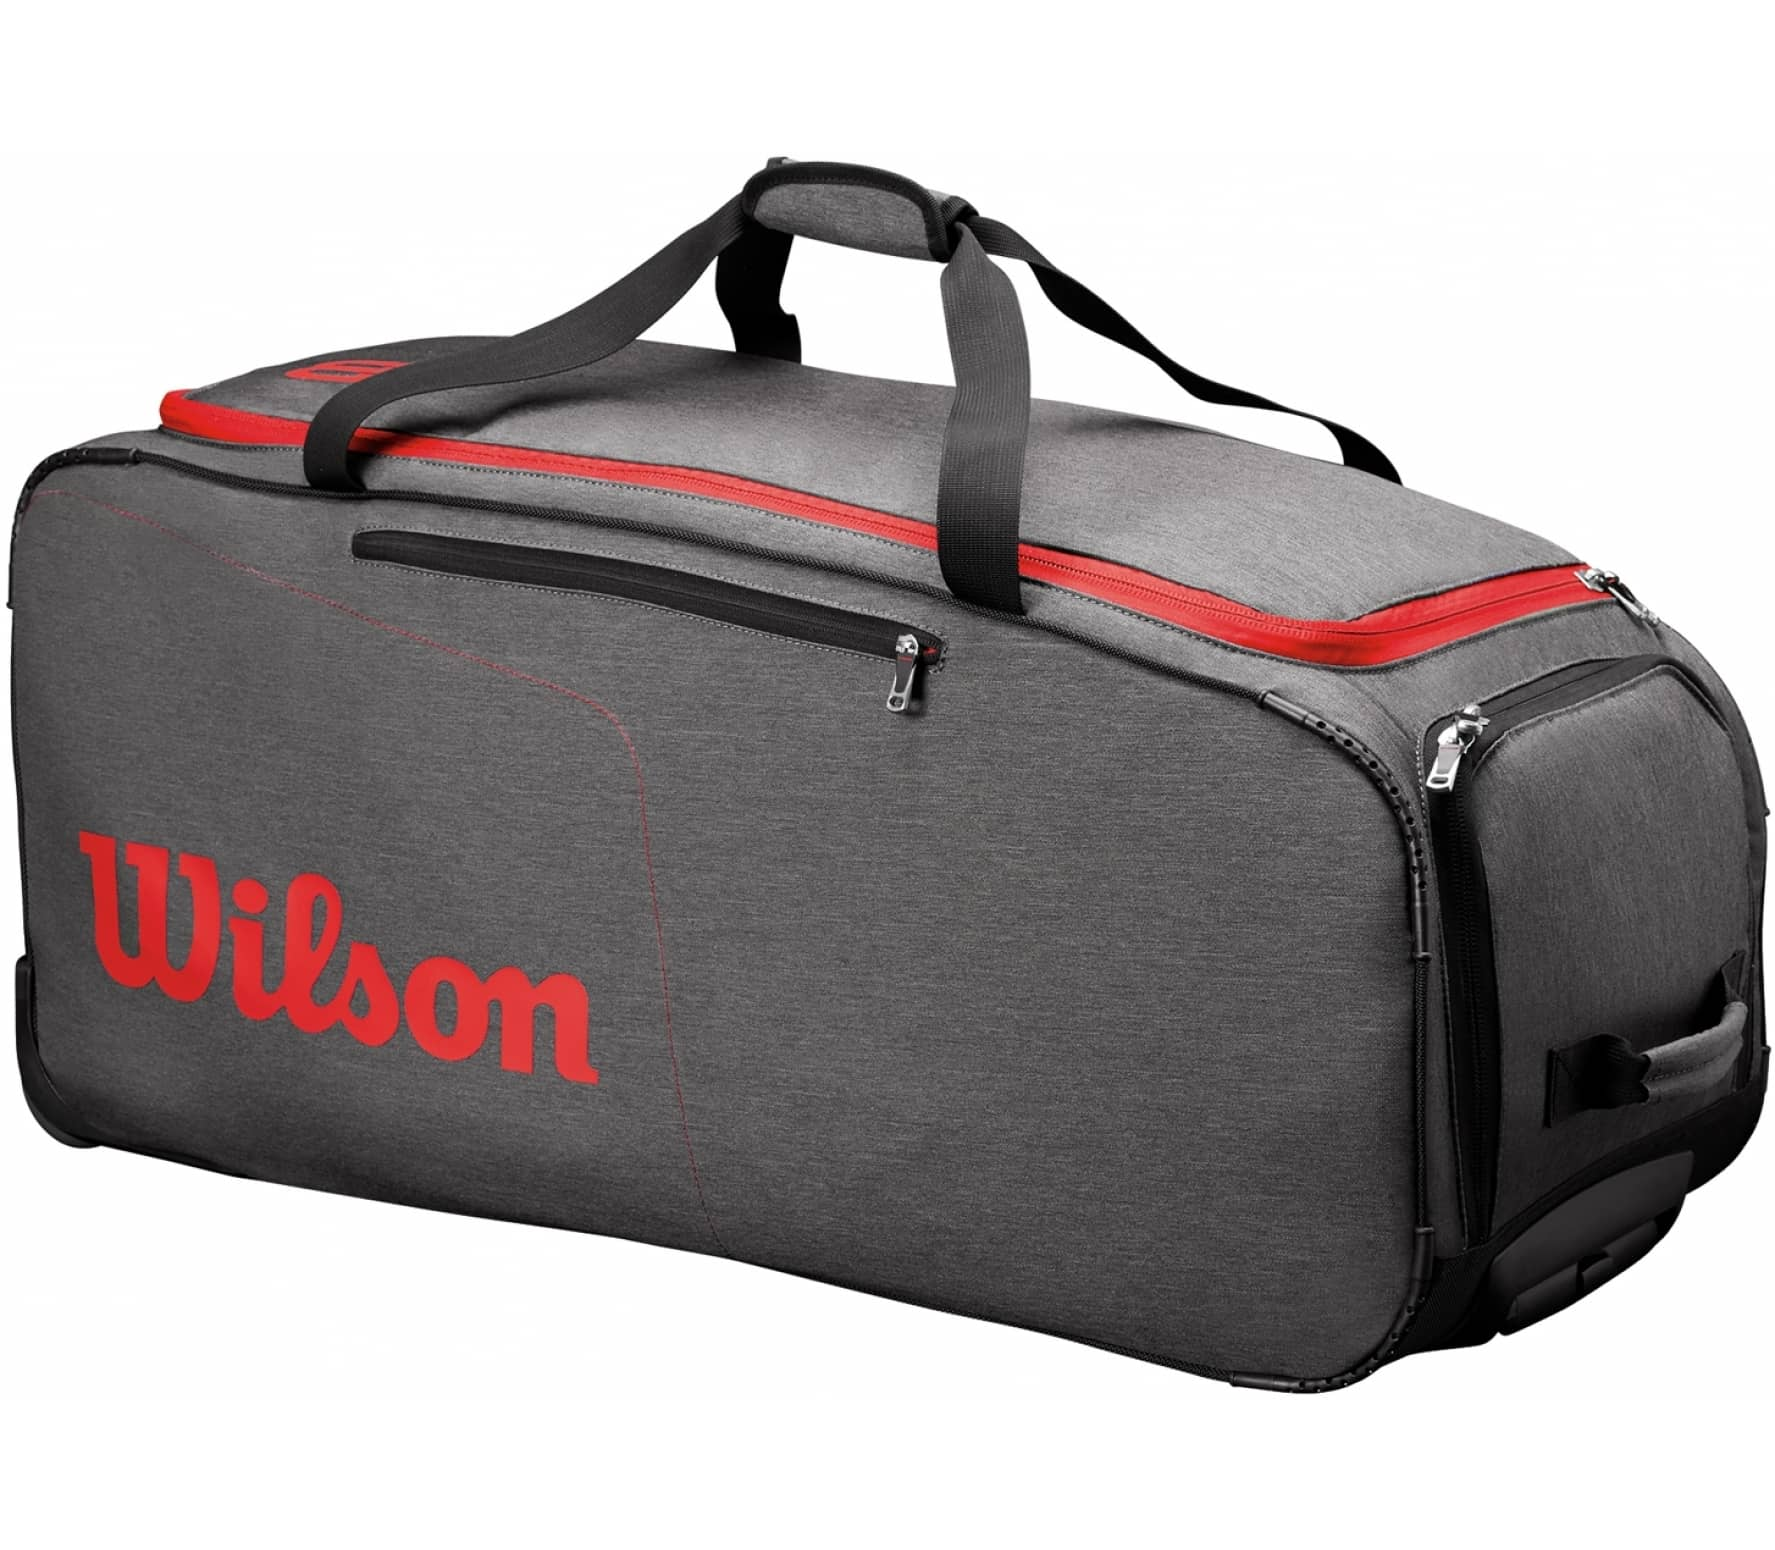 74ae1daa42c Wilson - Wheeled Travel duffel bag women s tennis bag (black red ...